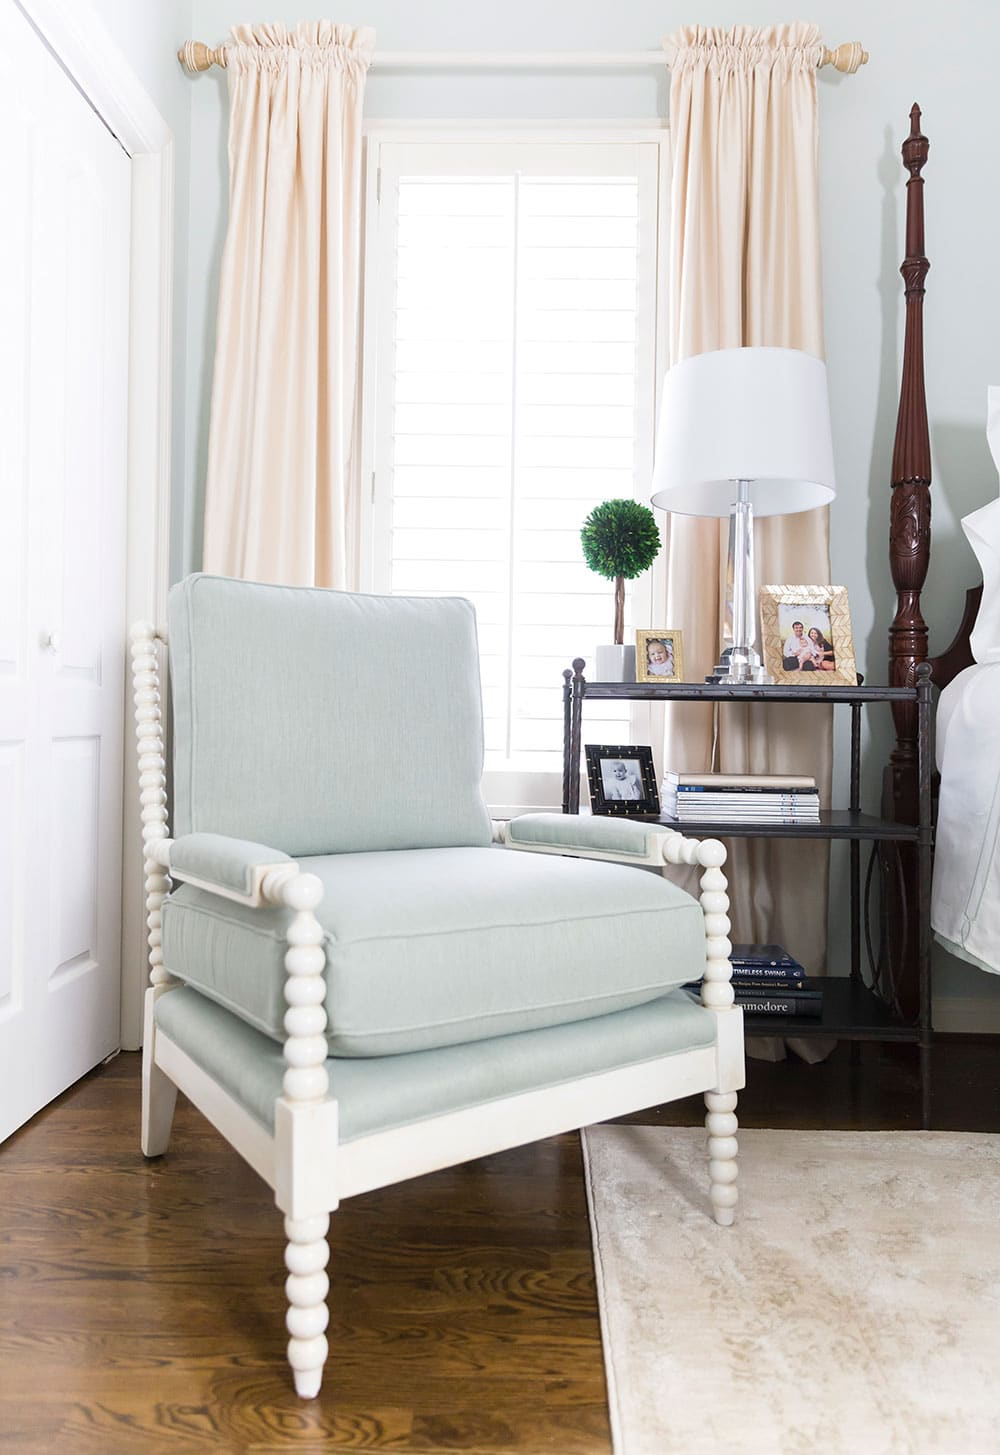 The perfect chair for any bedroom!